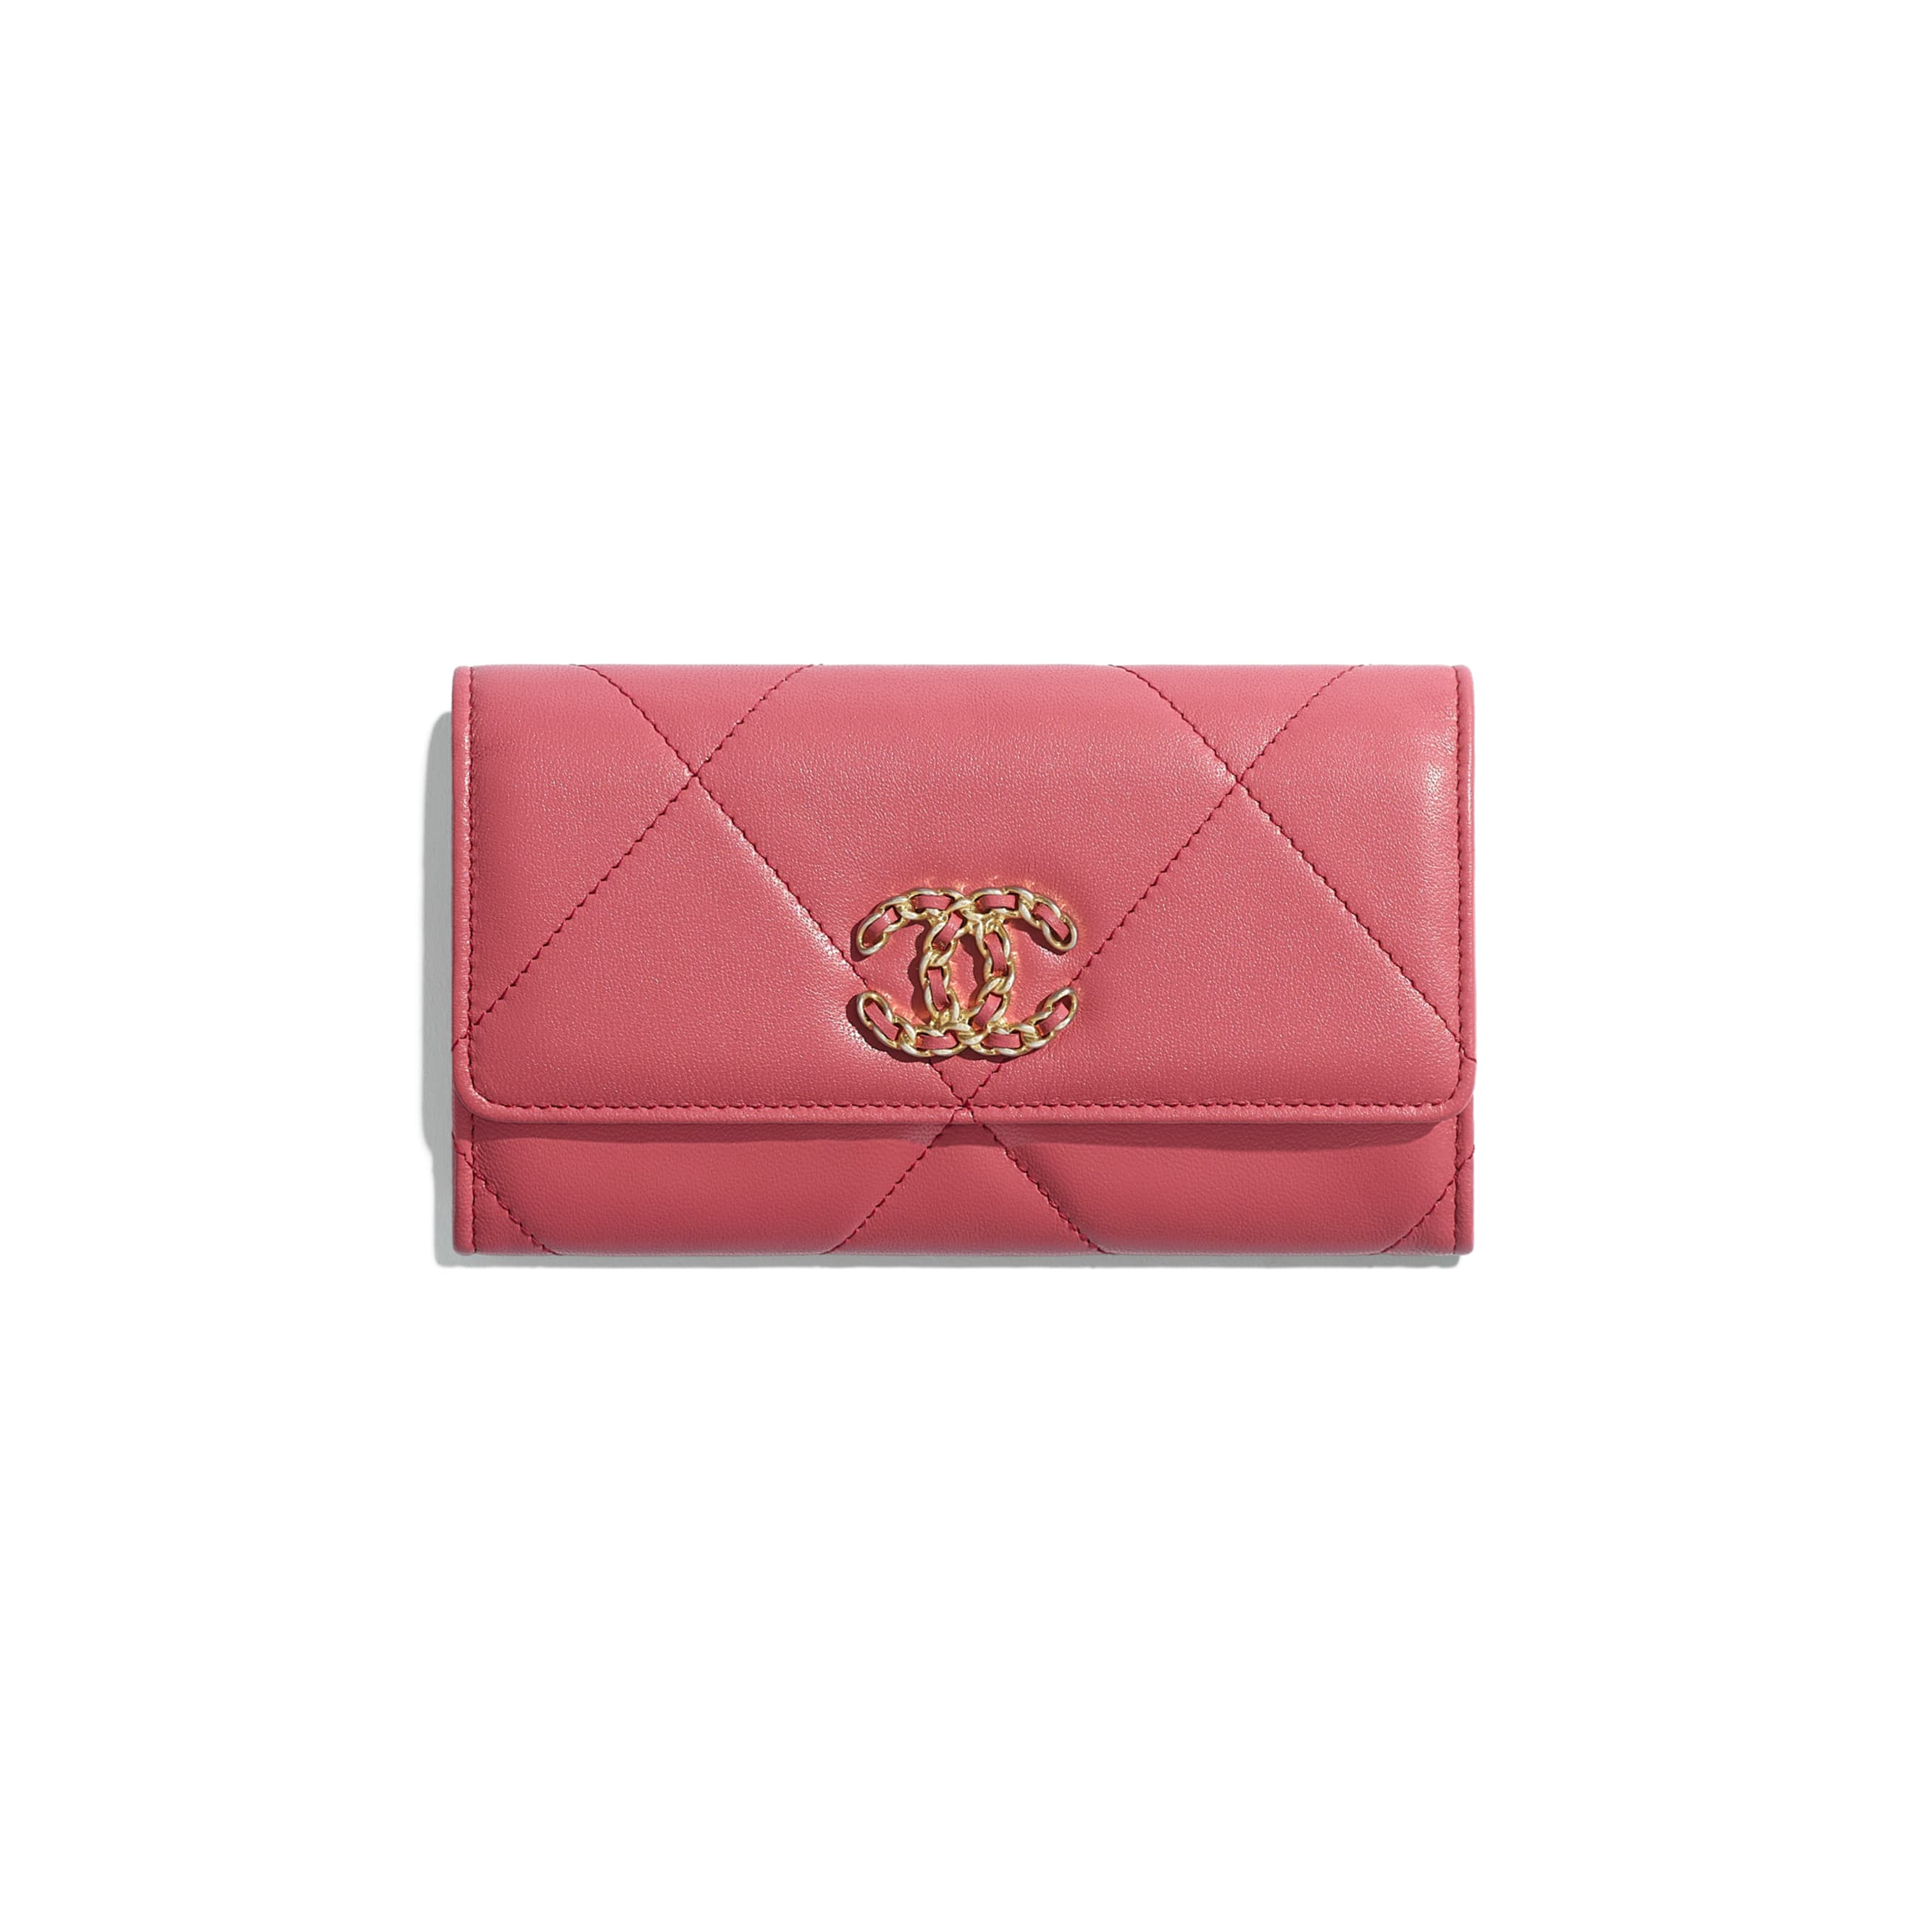 CHANEL 19 Flap Wallet - Pink - Lambskin, Gold-Tone, Silver-Tone & Ruthenium-Finish Metal - Default view - see standard sized version